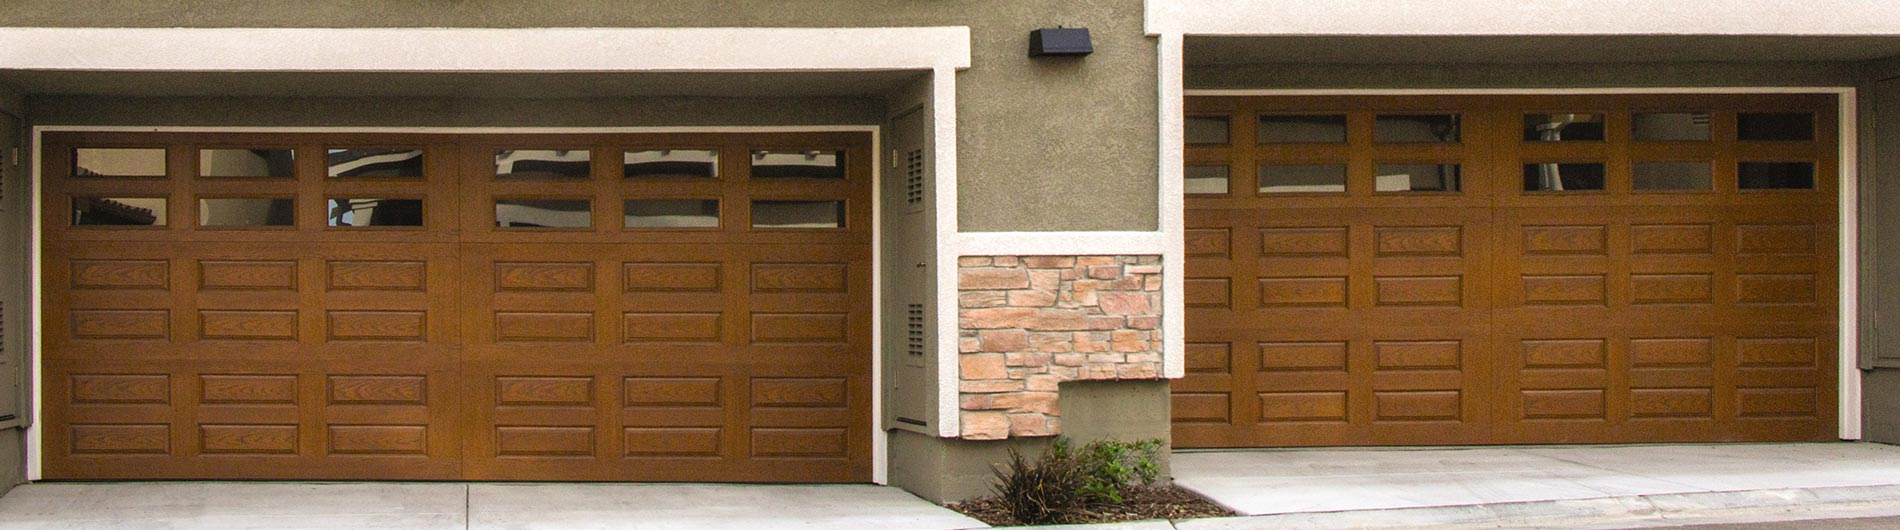 Door fiberglass 36 sc 1 st the home depot Wayne dalton garage doors